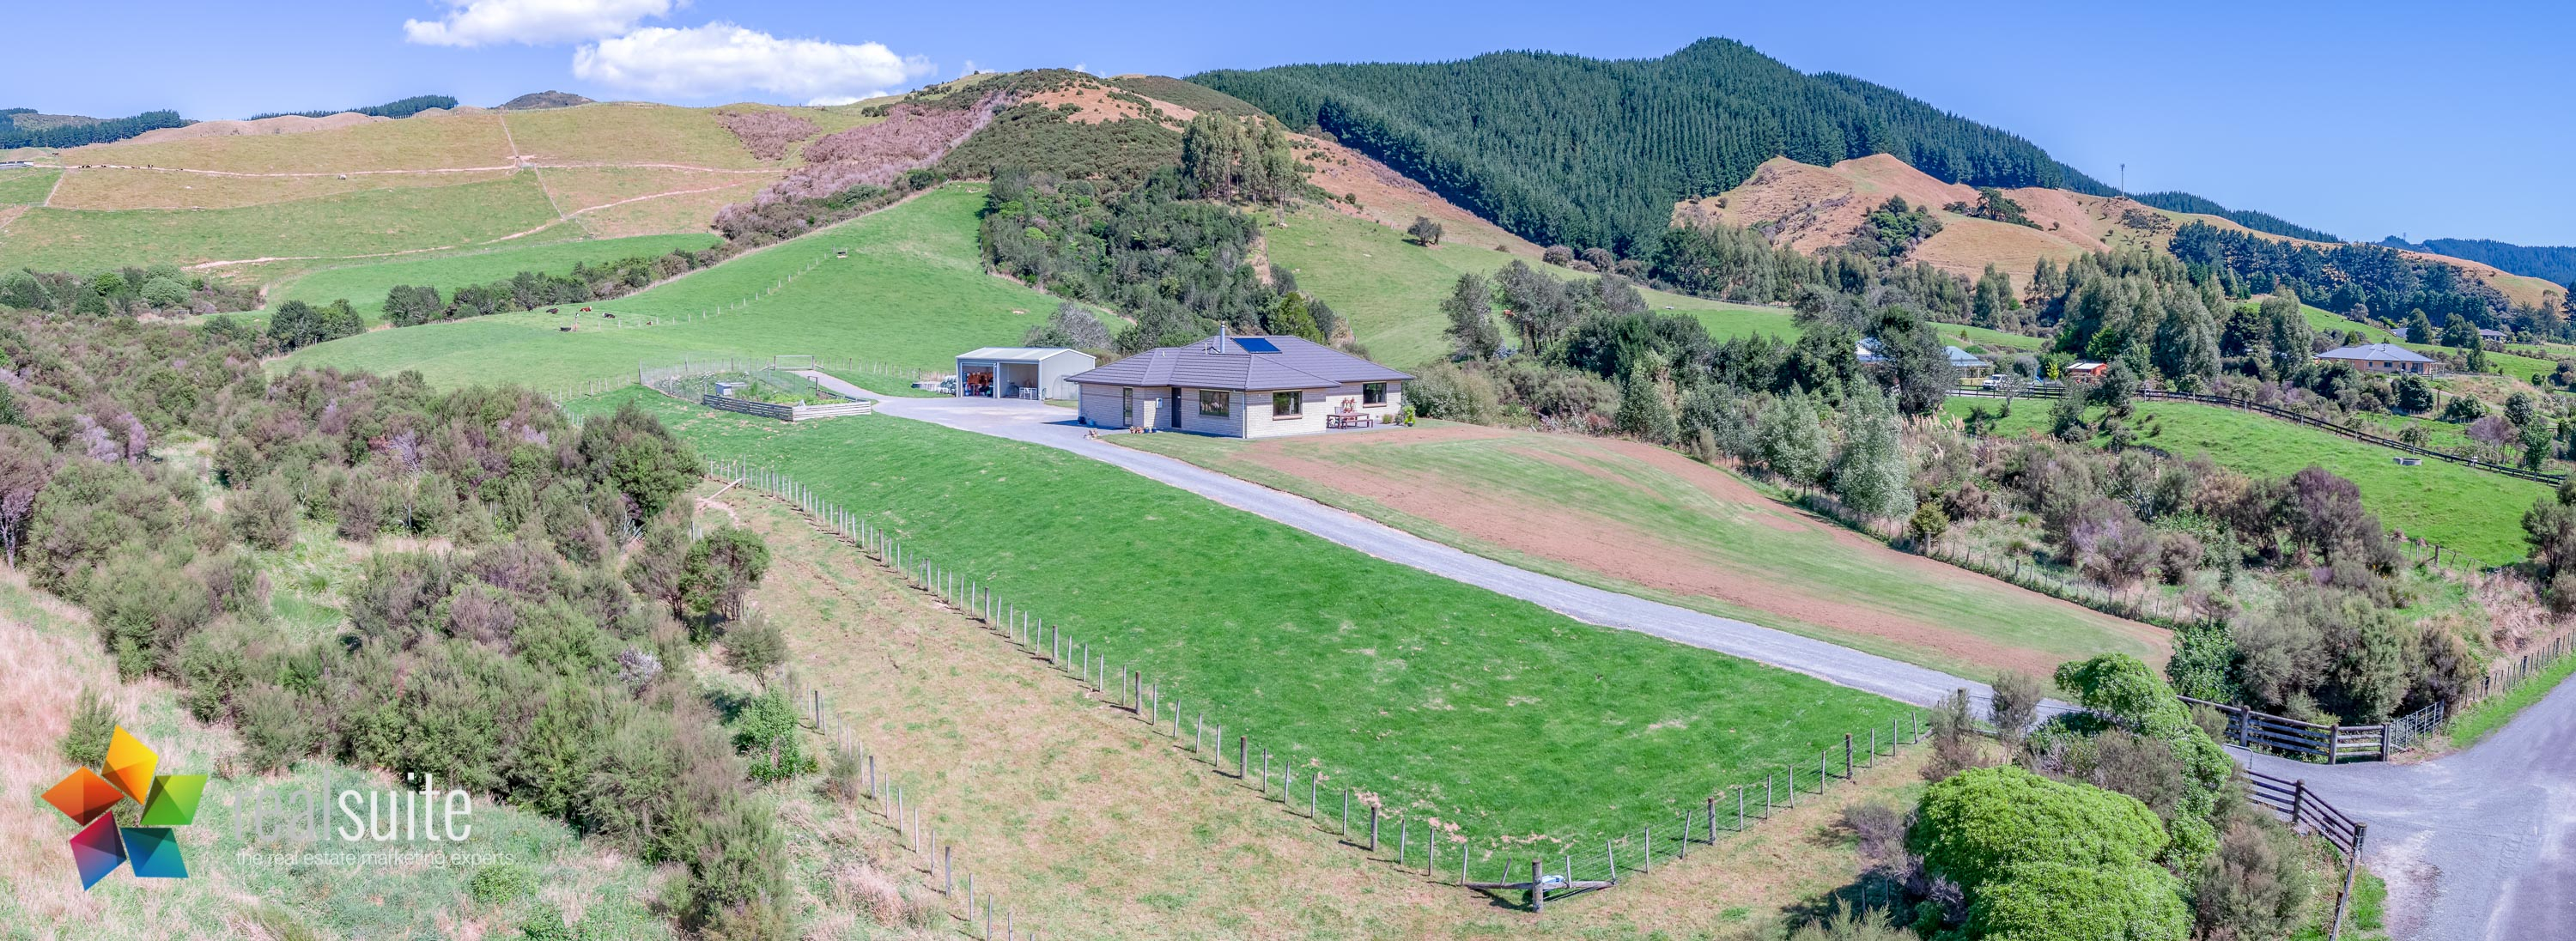 123e Johnsons Road, Whitemans Valley Aerial 0914-Pano